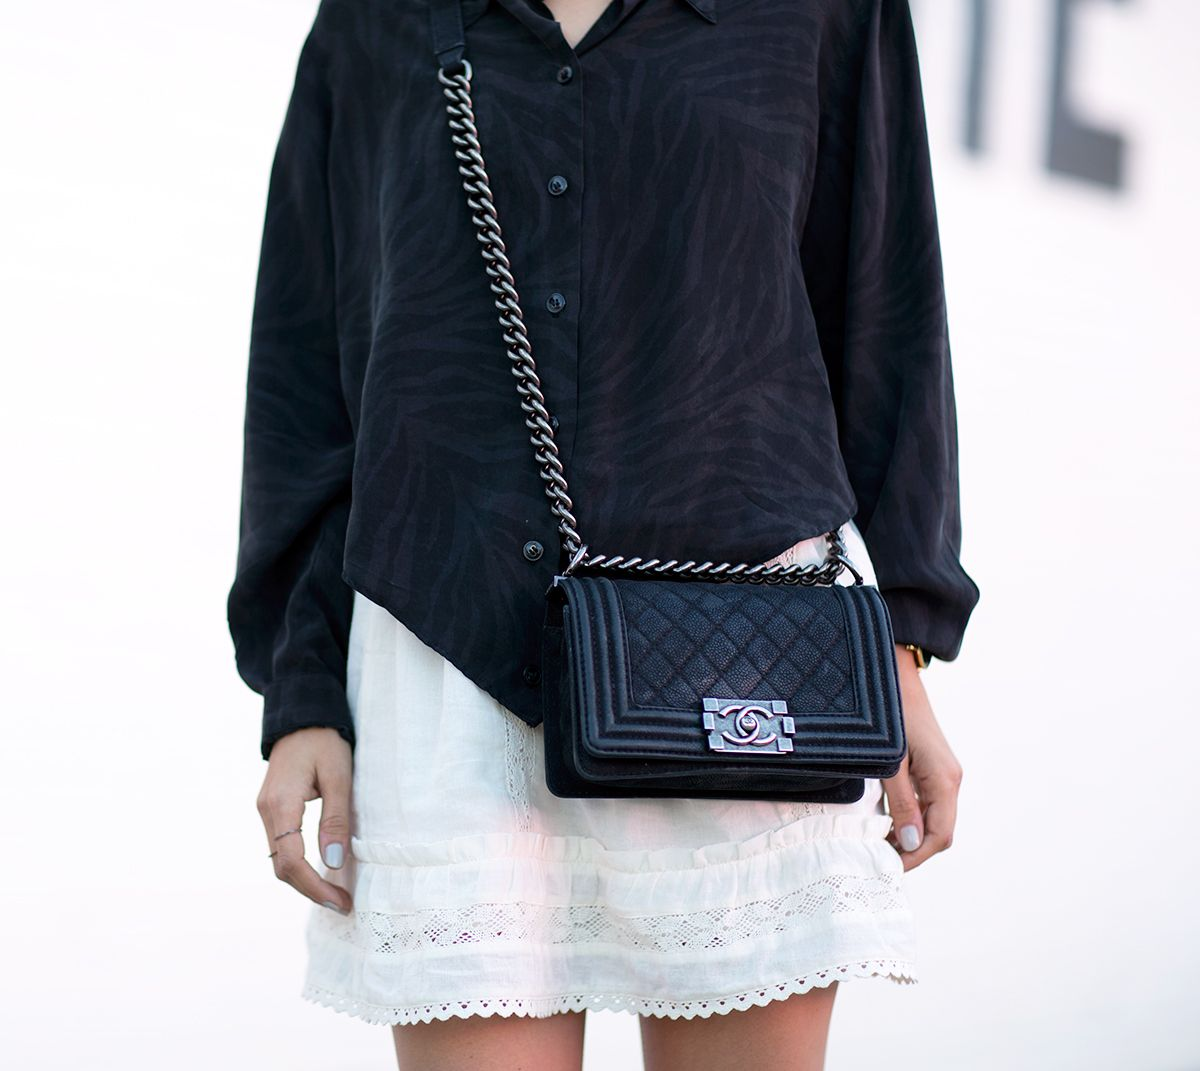 Chanel Boy Bag with Chain Strap Blogger Courtney Trop Top Los Angeles Blogger